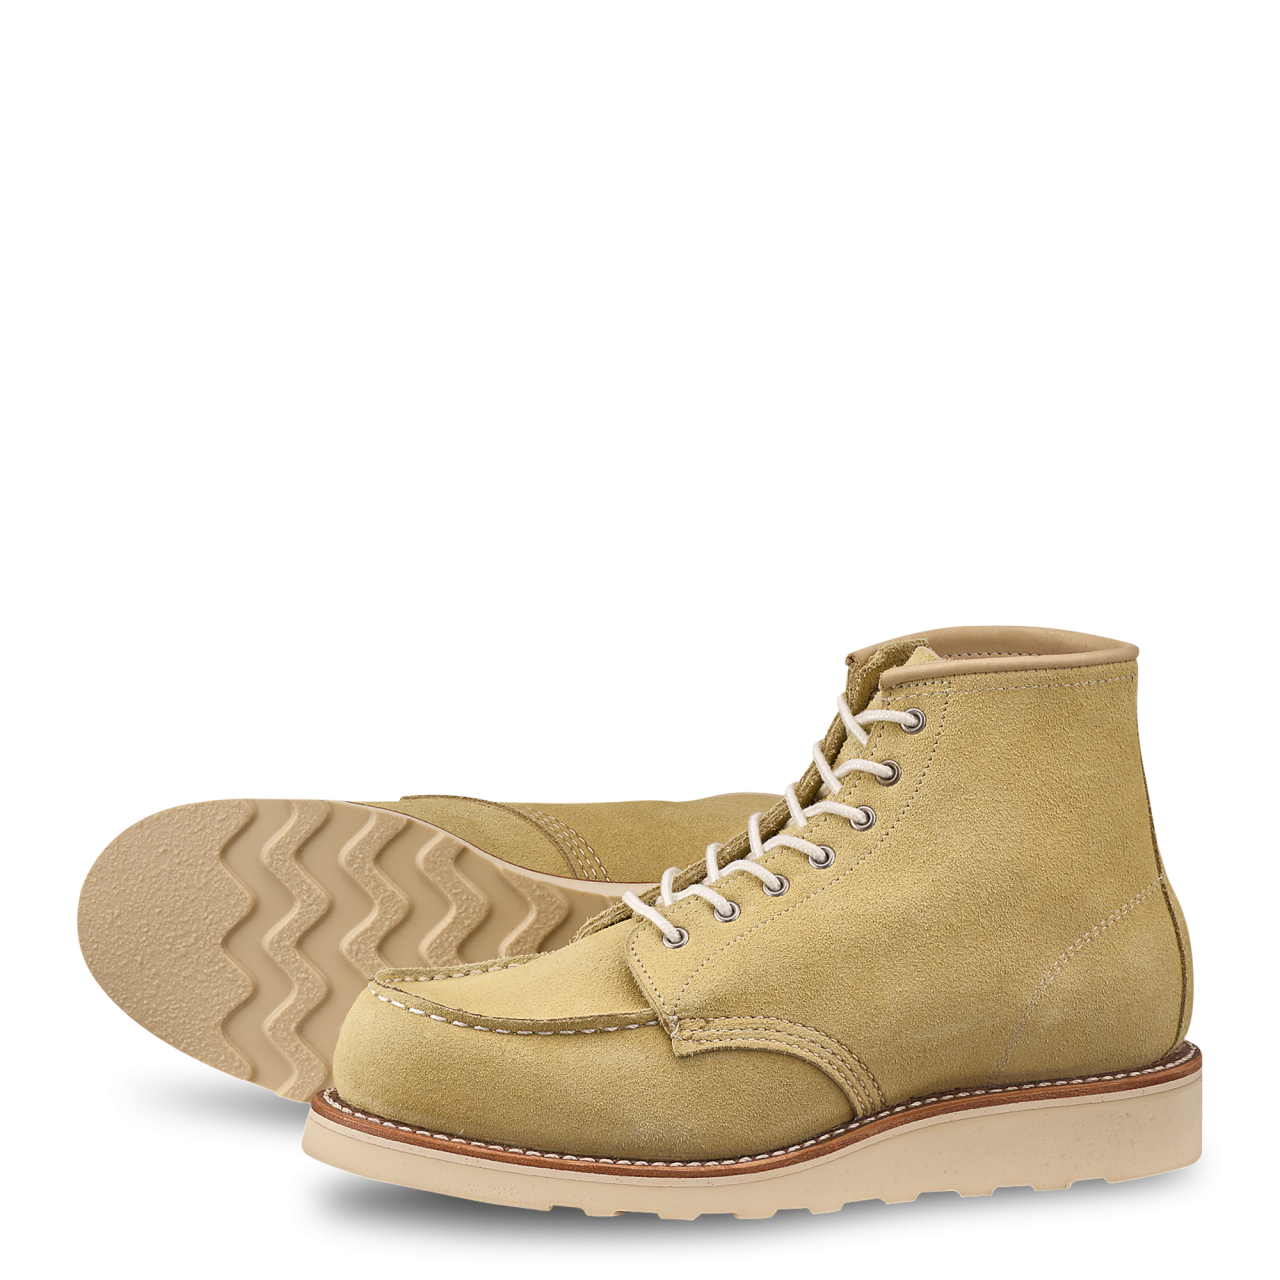 Red Wing 3423 Moc Toe